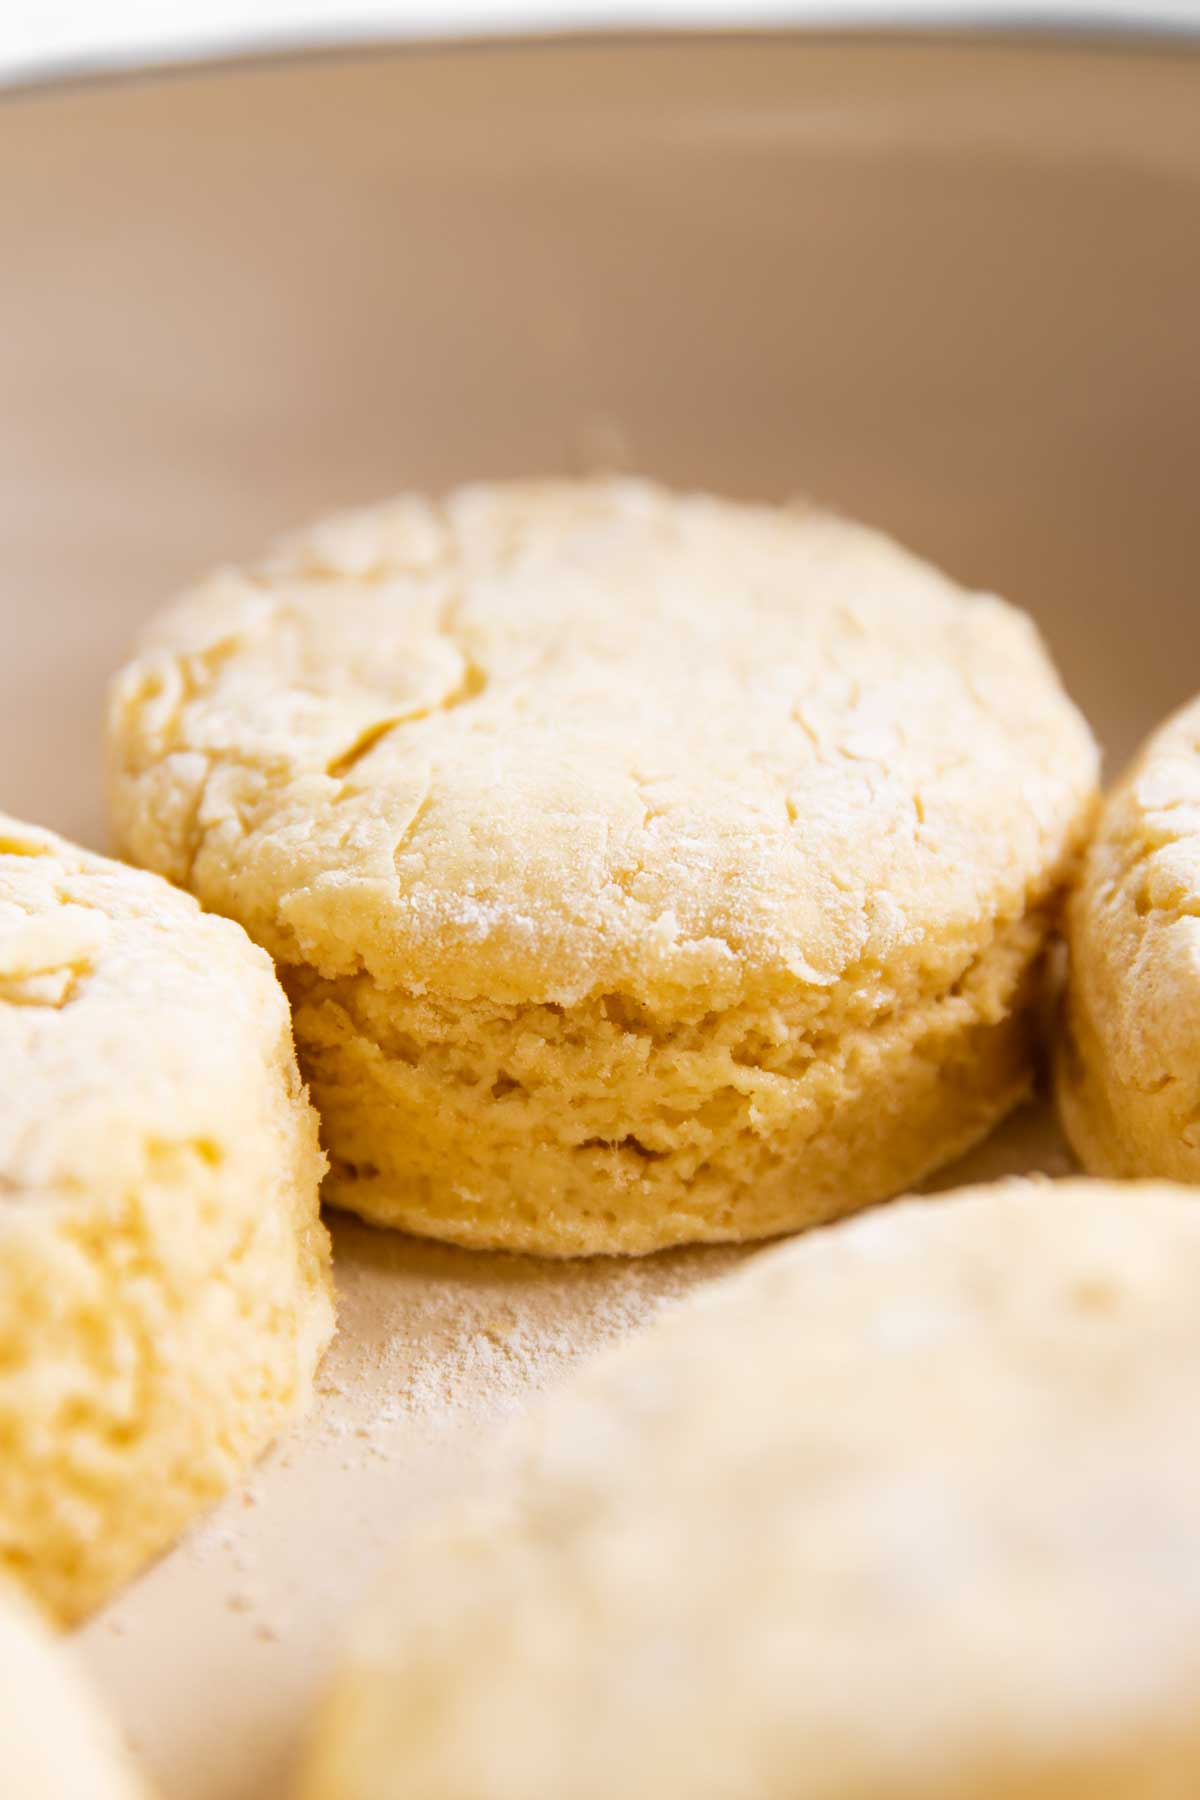 close up view of unbaked biscuit